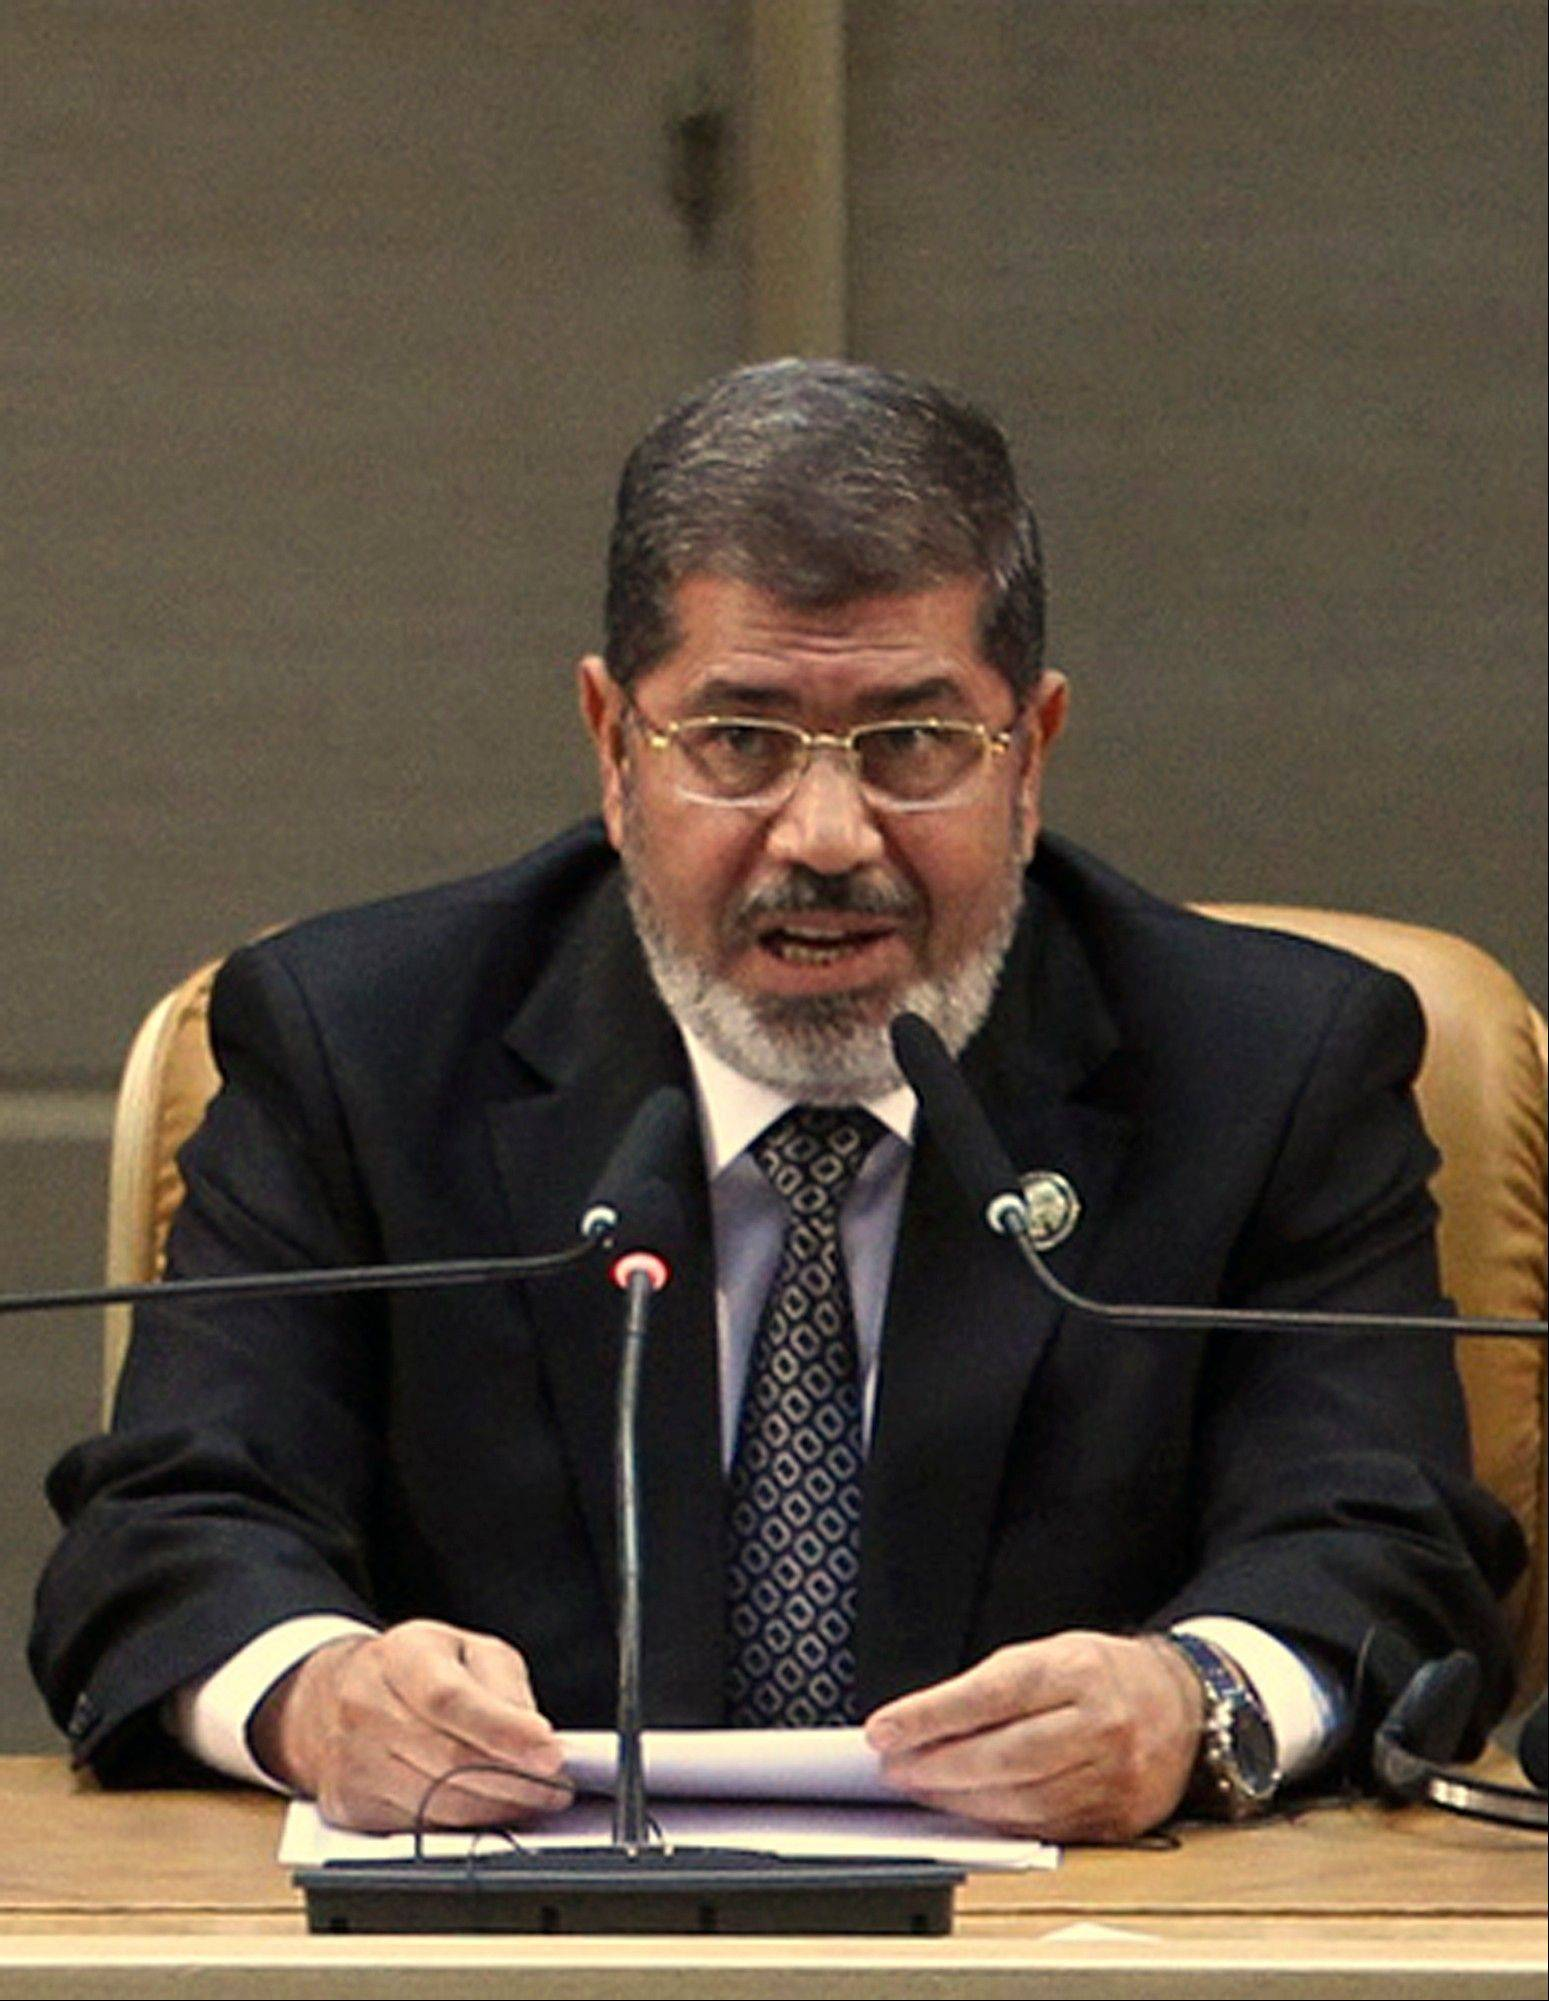 Egyptian President Mohammed Morsi addresses a summit of the Nonaligned Movement in Tehran, Iran, Thursday, Aug. 30, 2012. Morsi arrived in Tehran on Thursday in the first visit by an Egyptian leader to Iran after decades of hostility between the two countries.